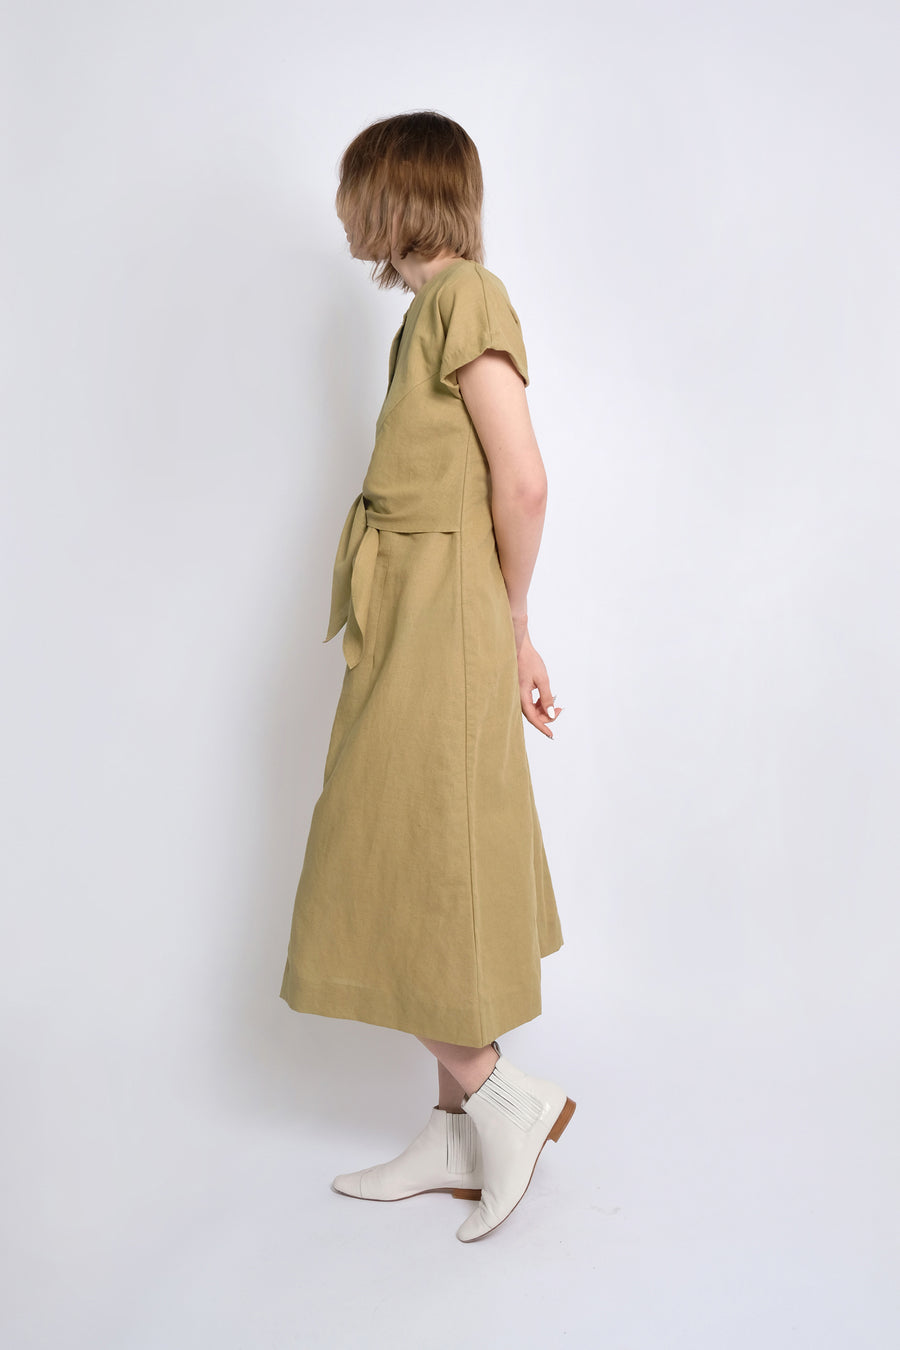 Moss Knotted Dress